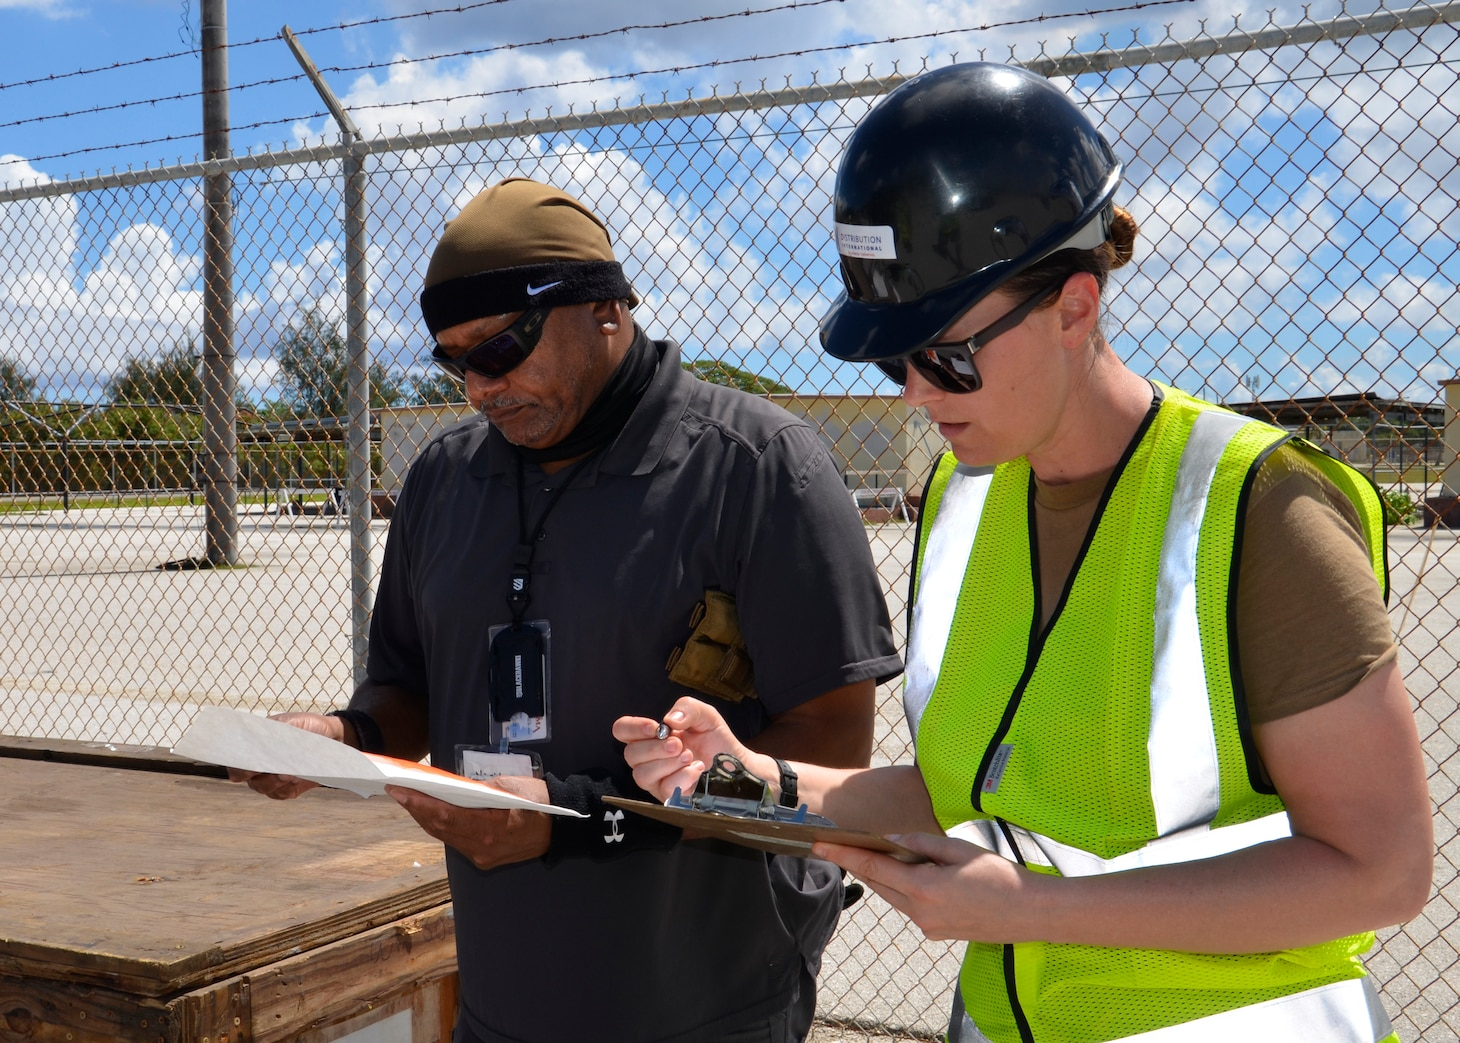 A woman and man go over a checklist in front of a fence.